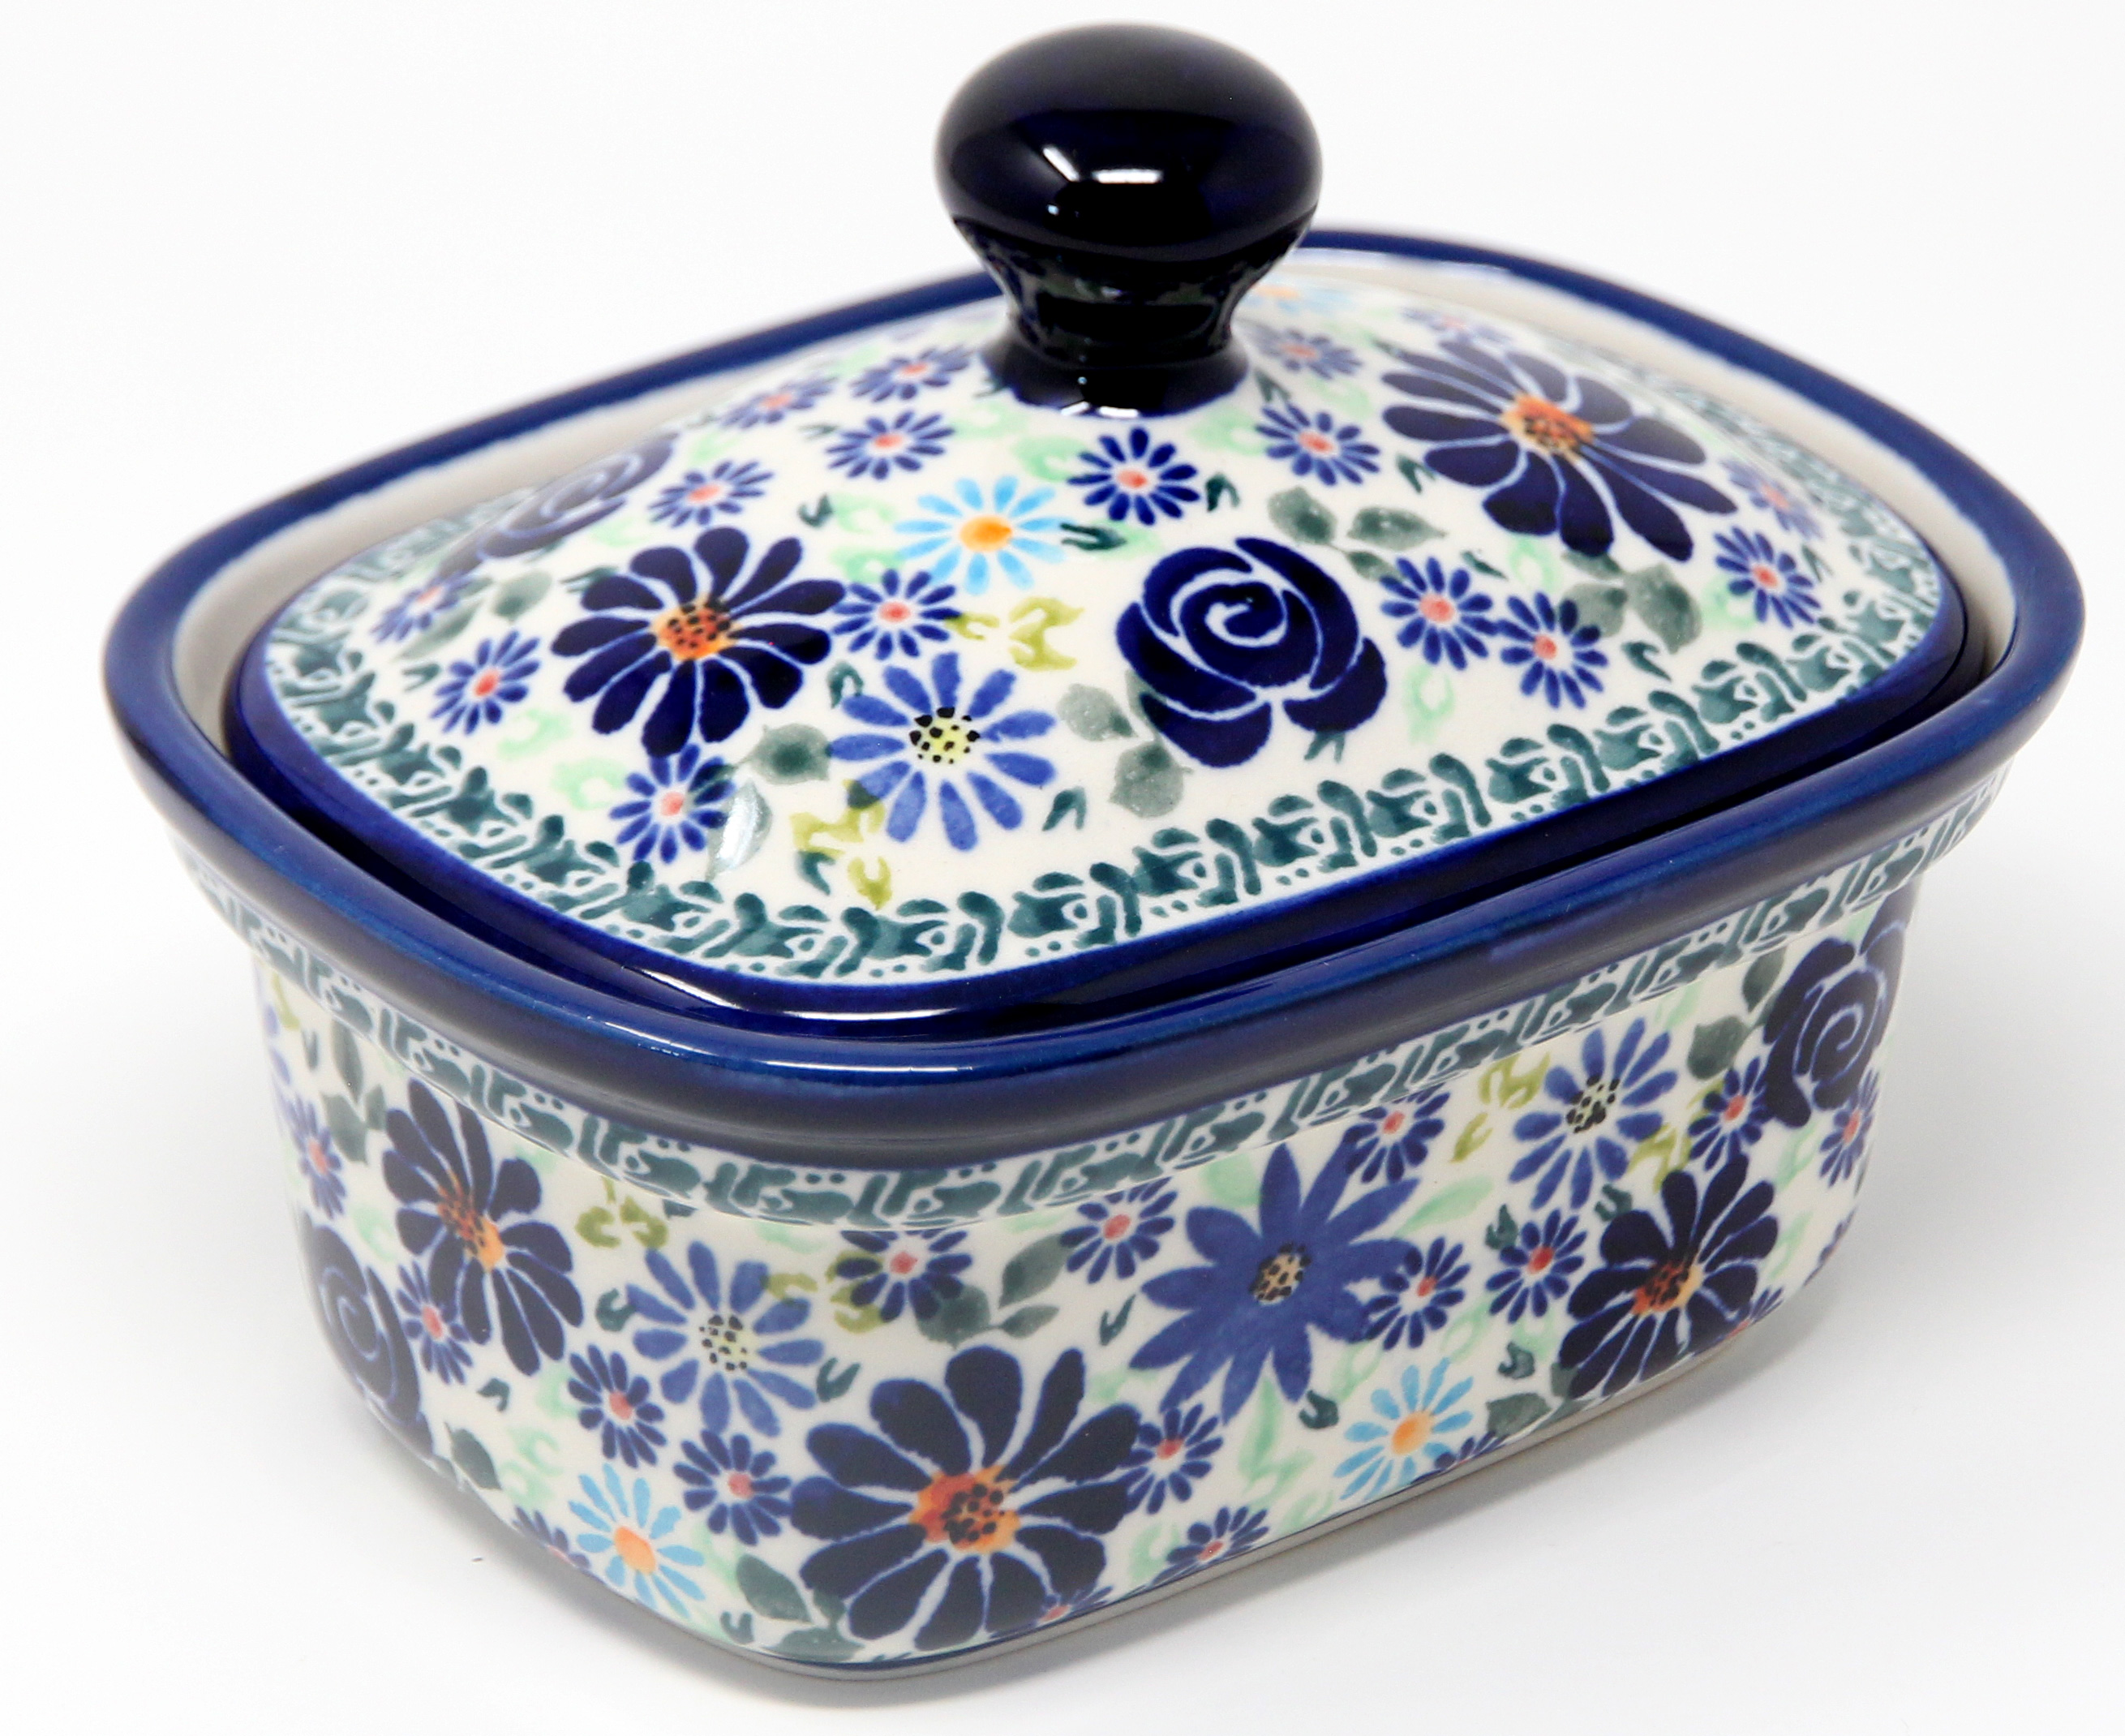 Butter Tub 2 Cups Capacity in Polish Pottery Design DU126